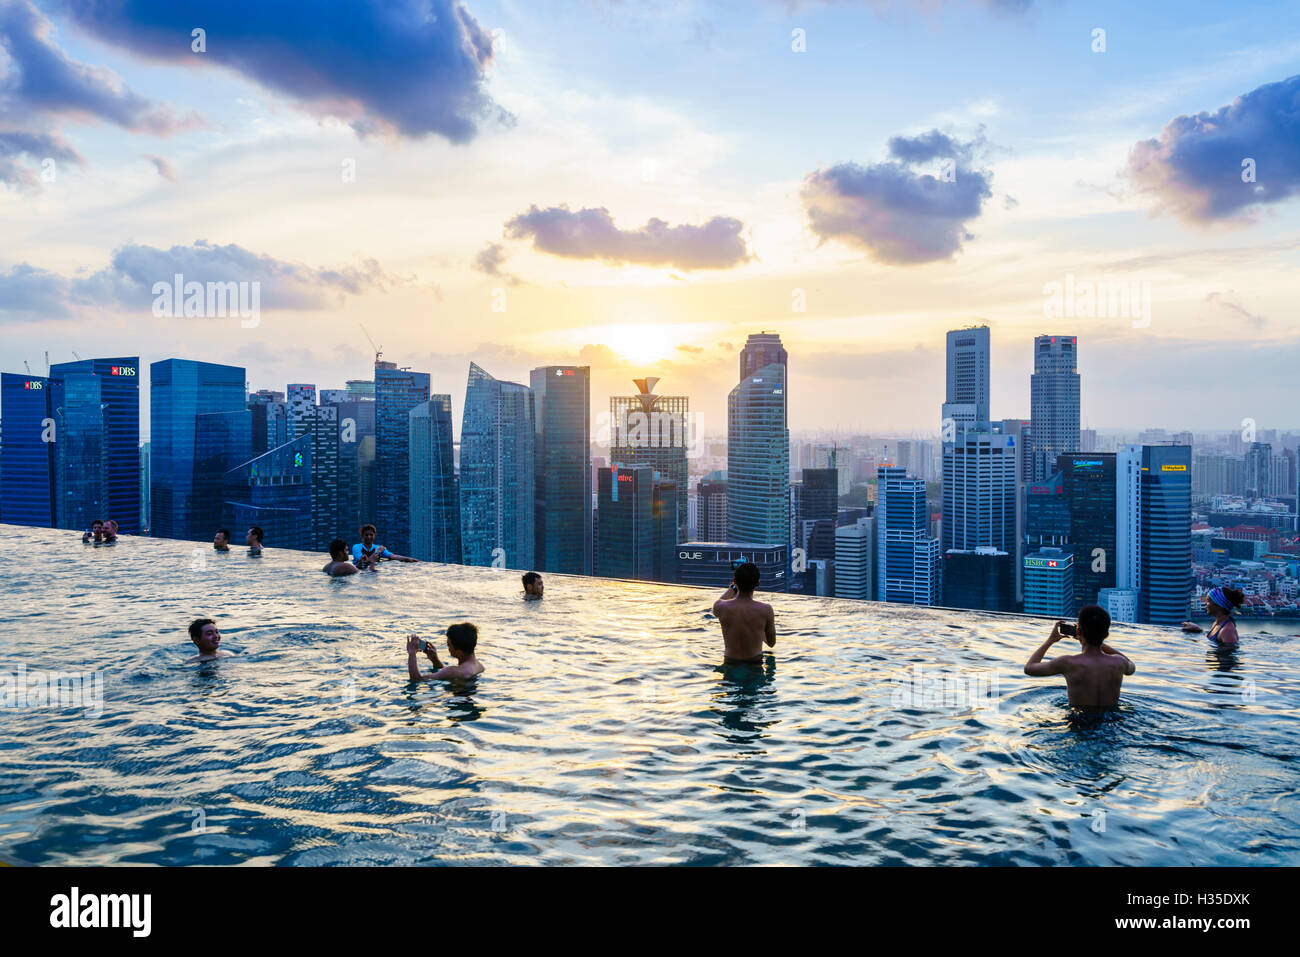 Infinity Pool On The Roof Of The Marina Bay Sands Hotel